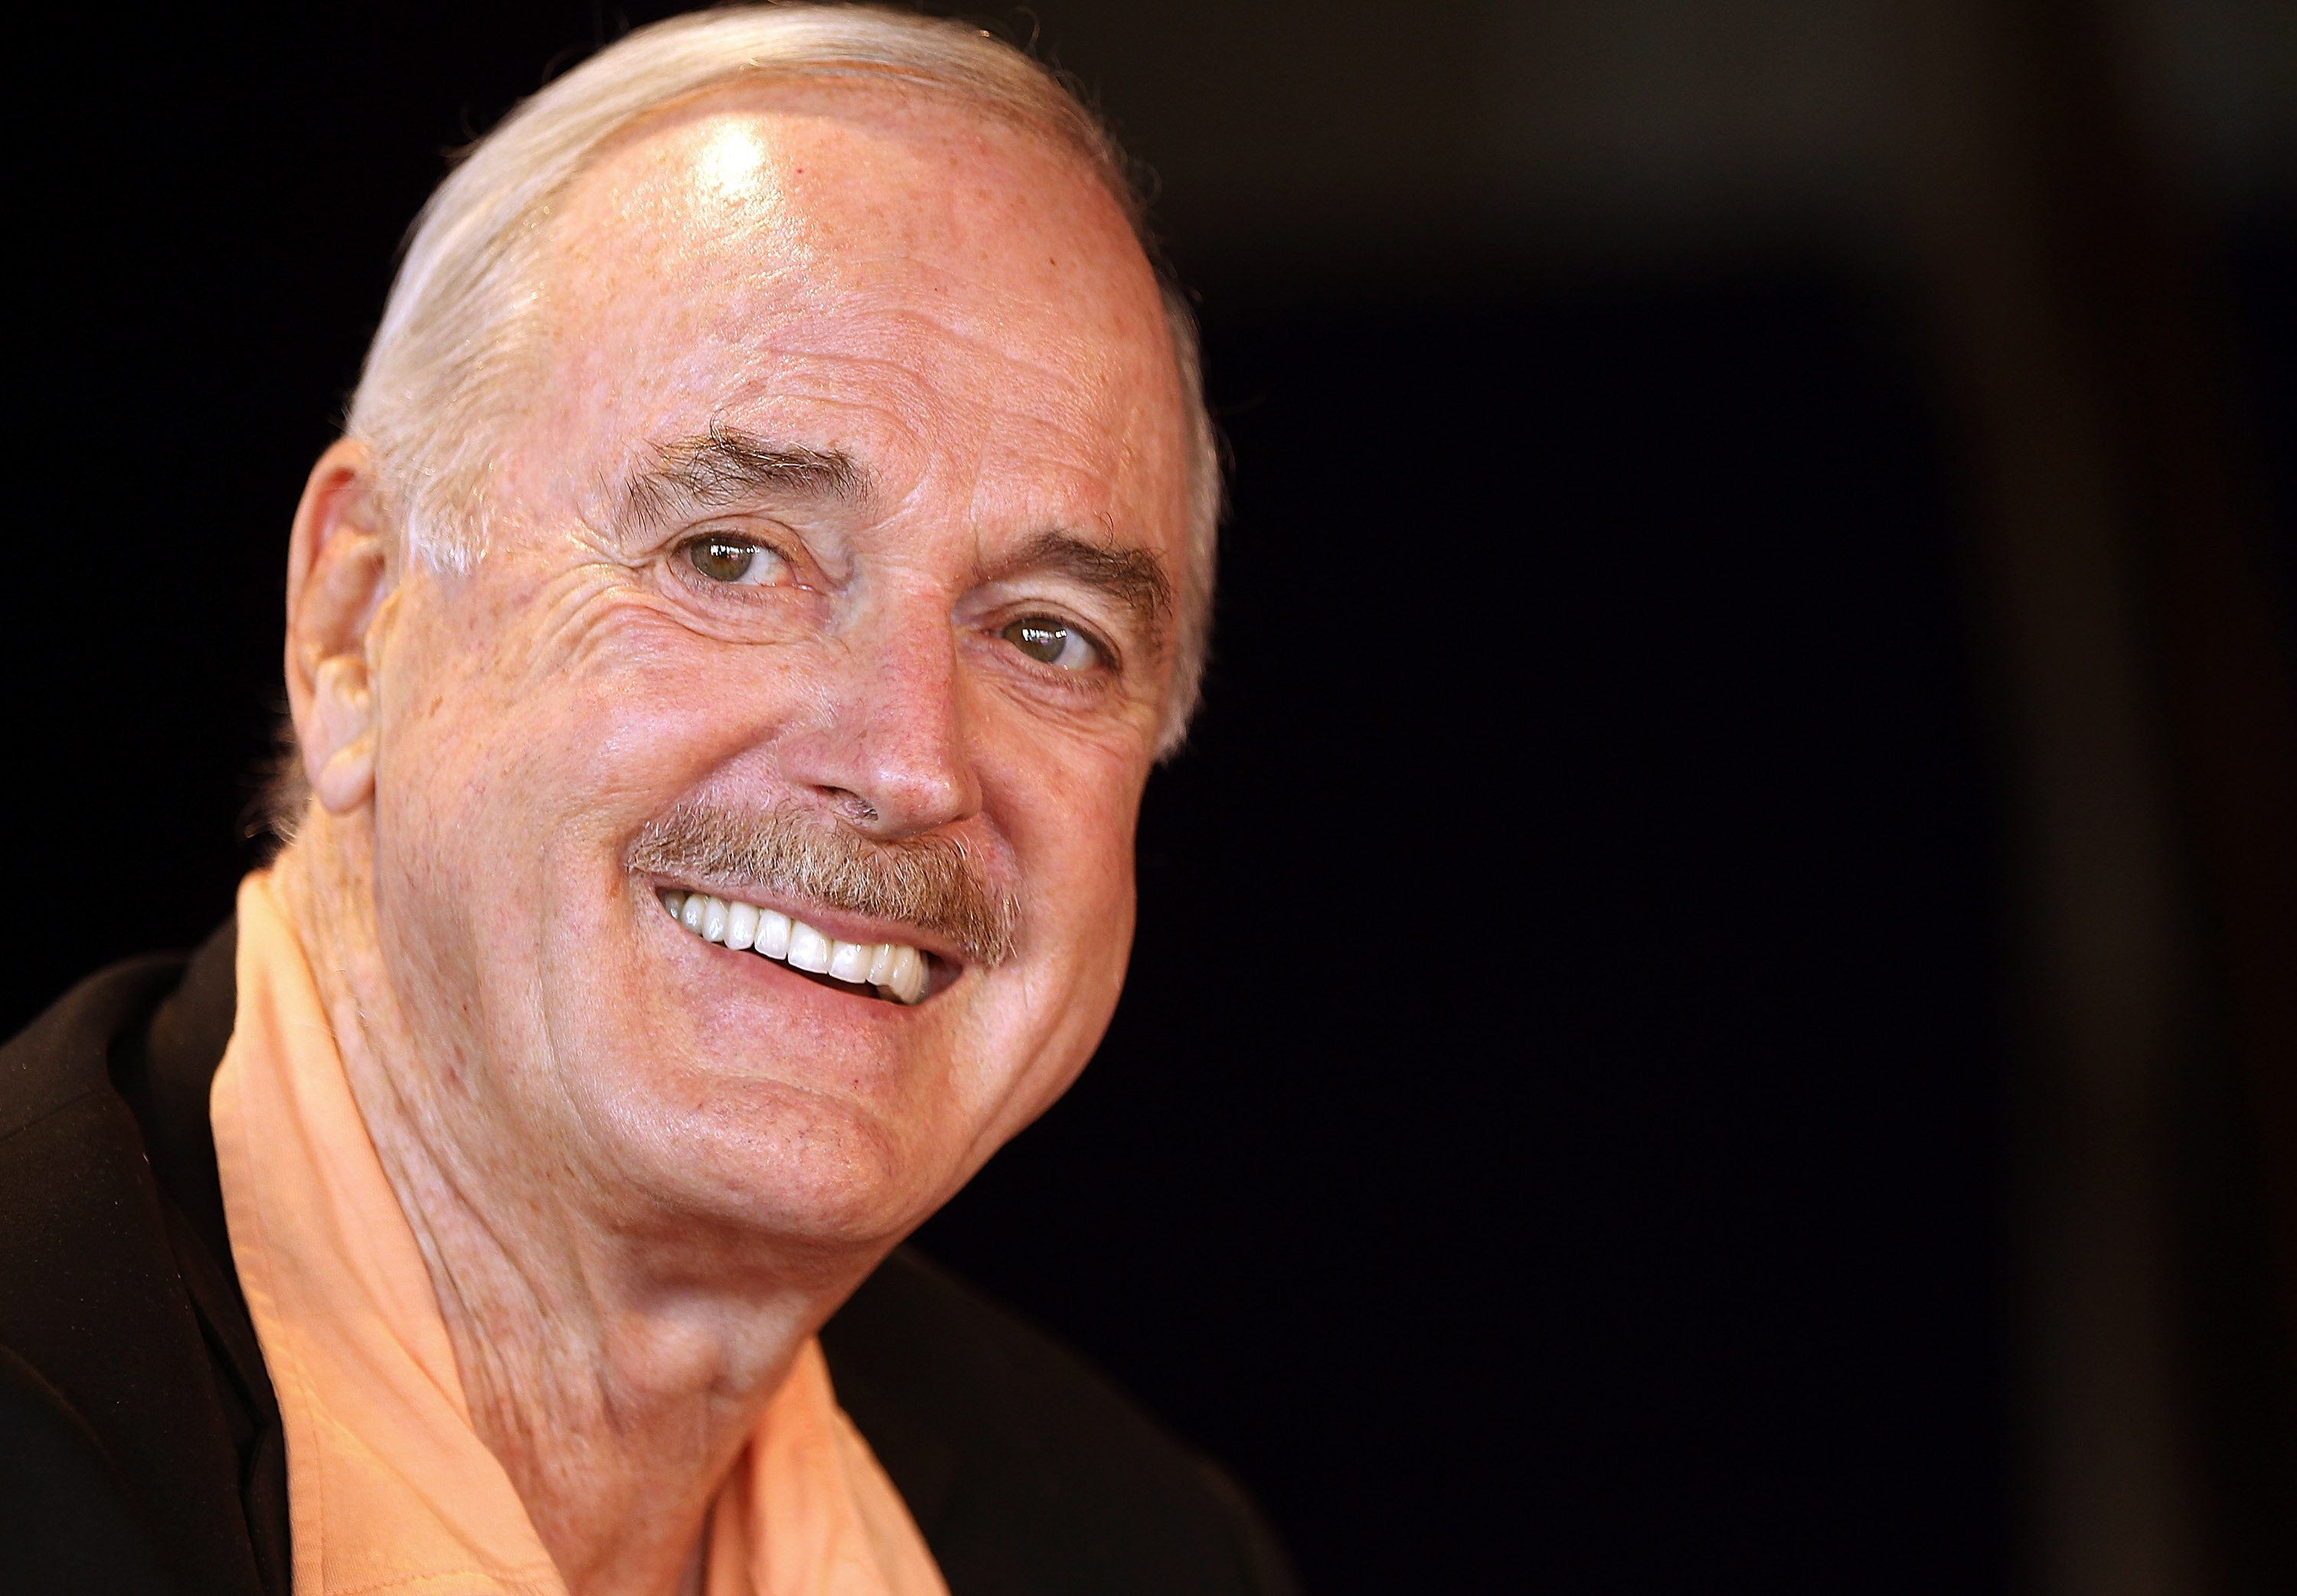 John cleese calls piers morgan a third rater and chancer after he